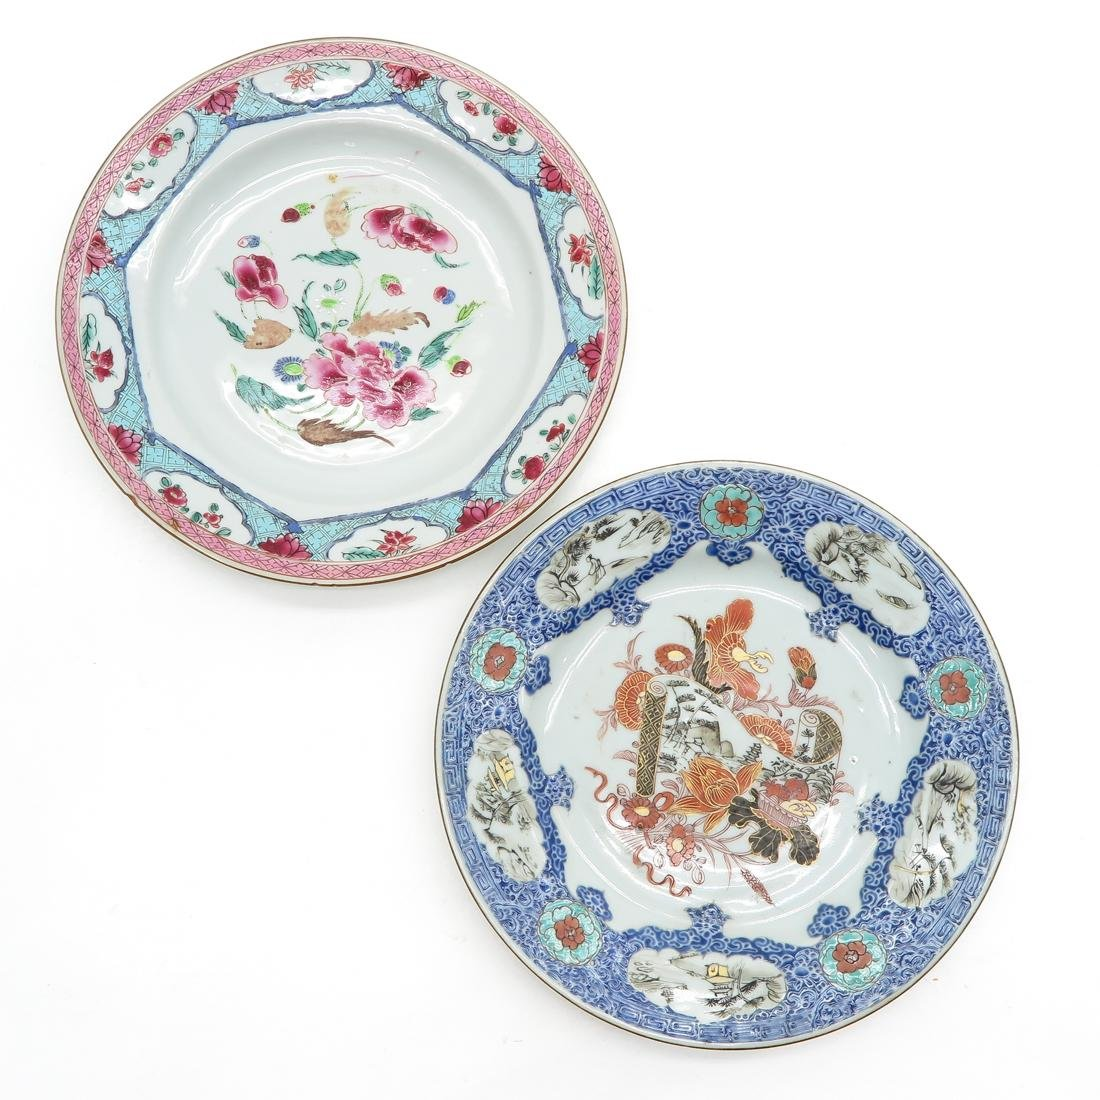 Lot of 2 Plates